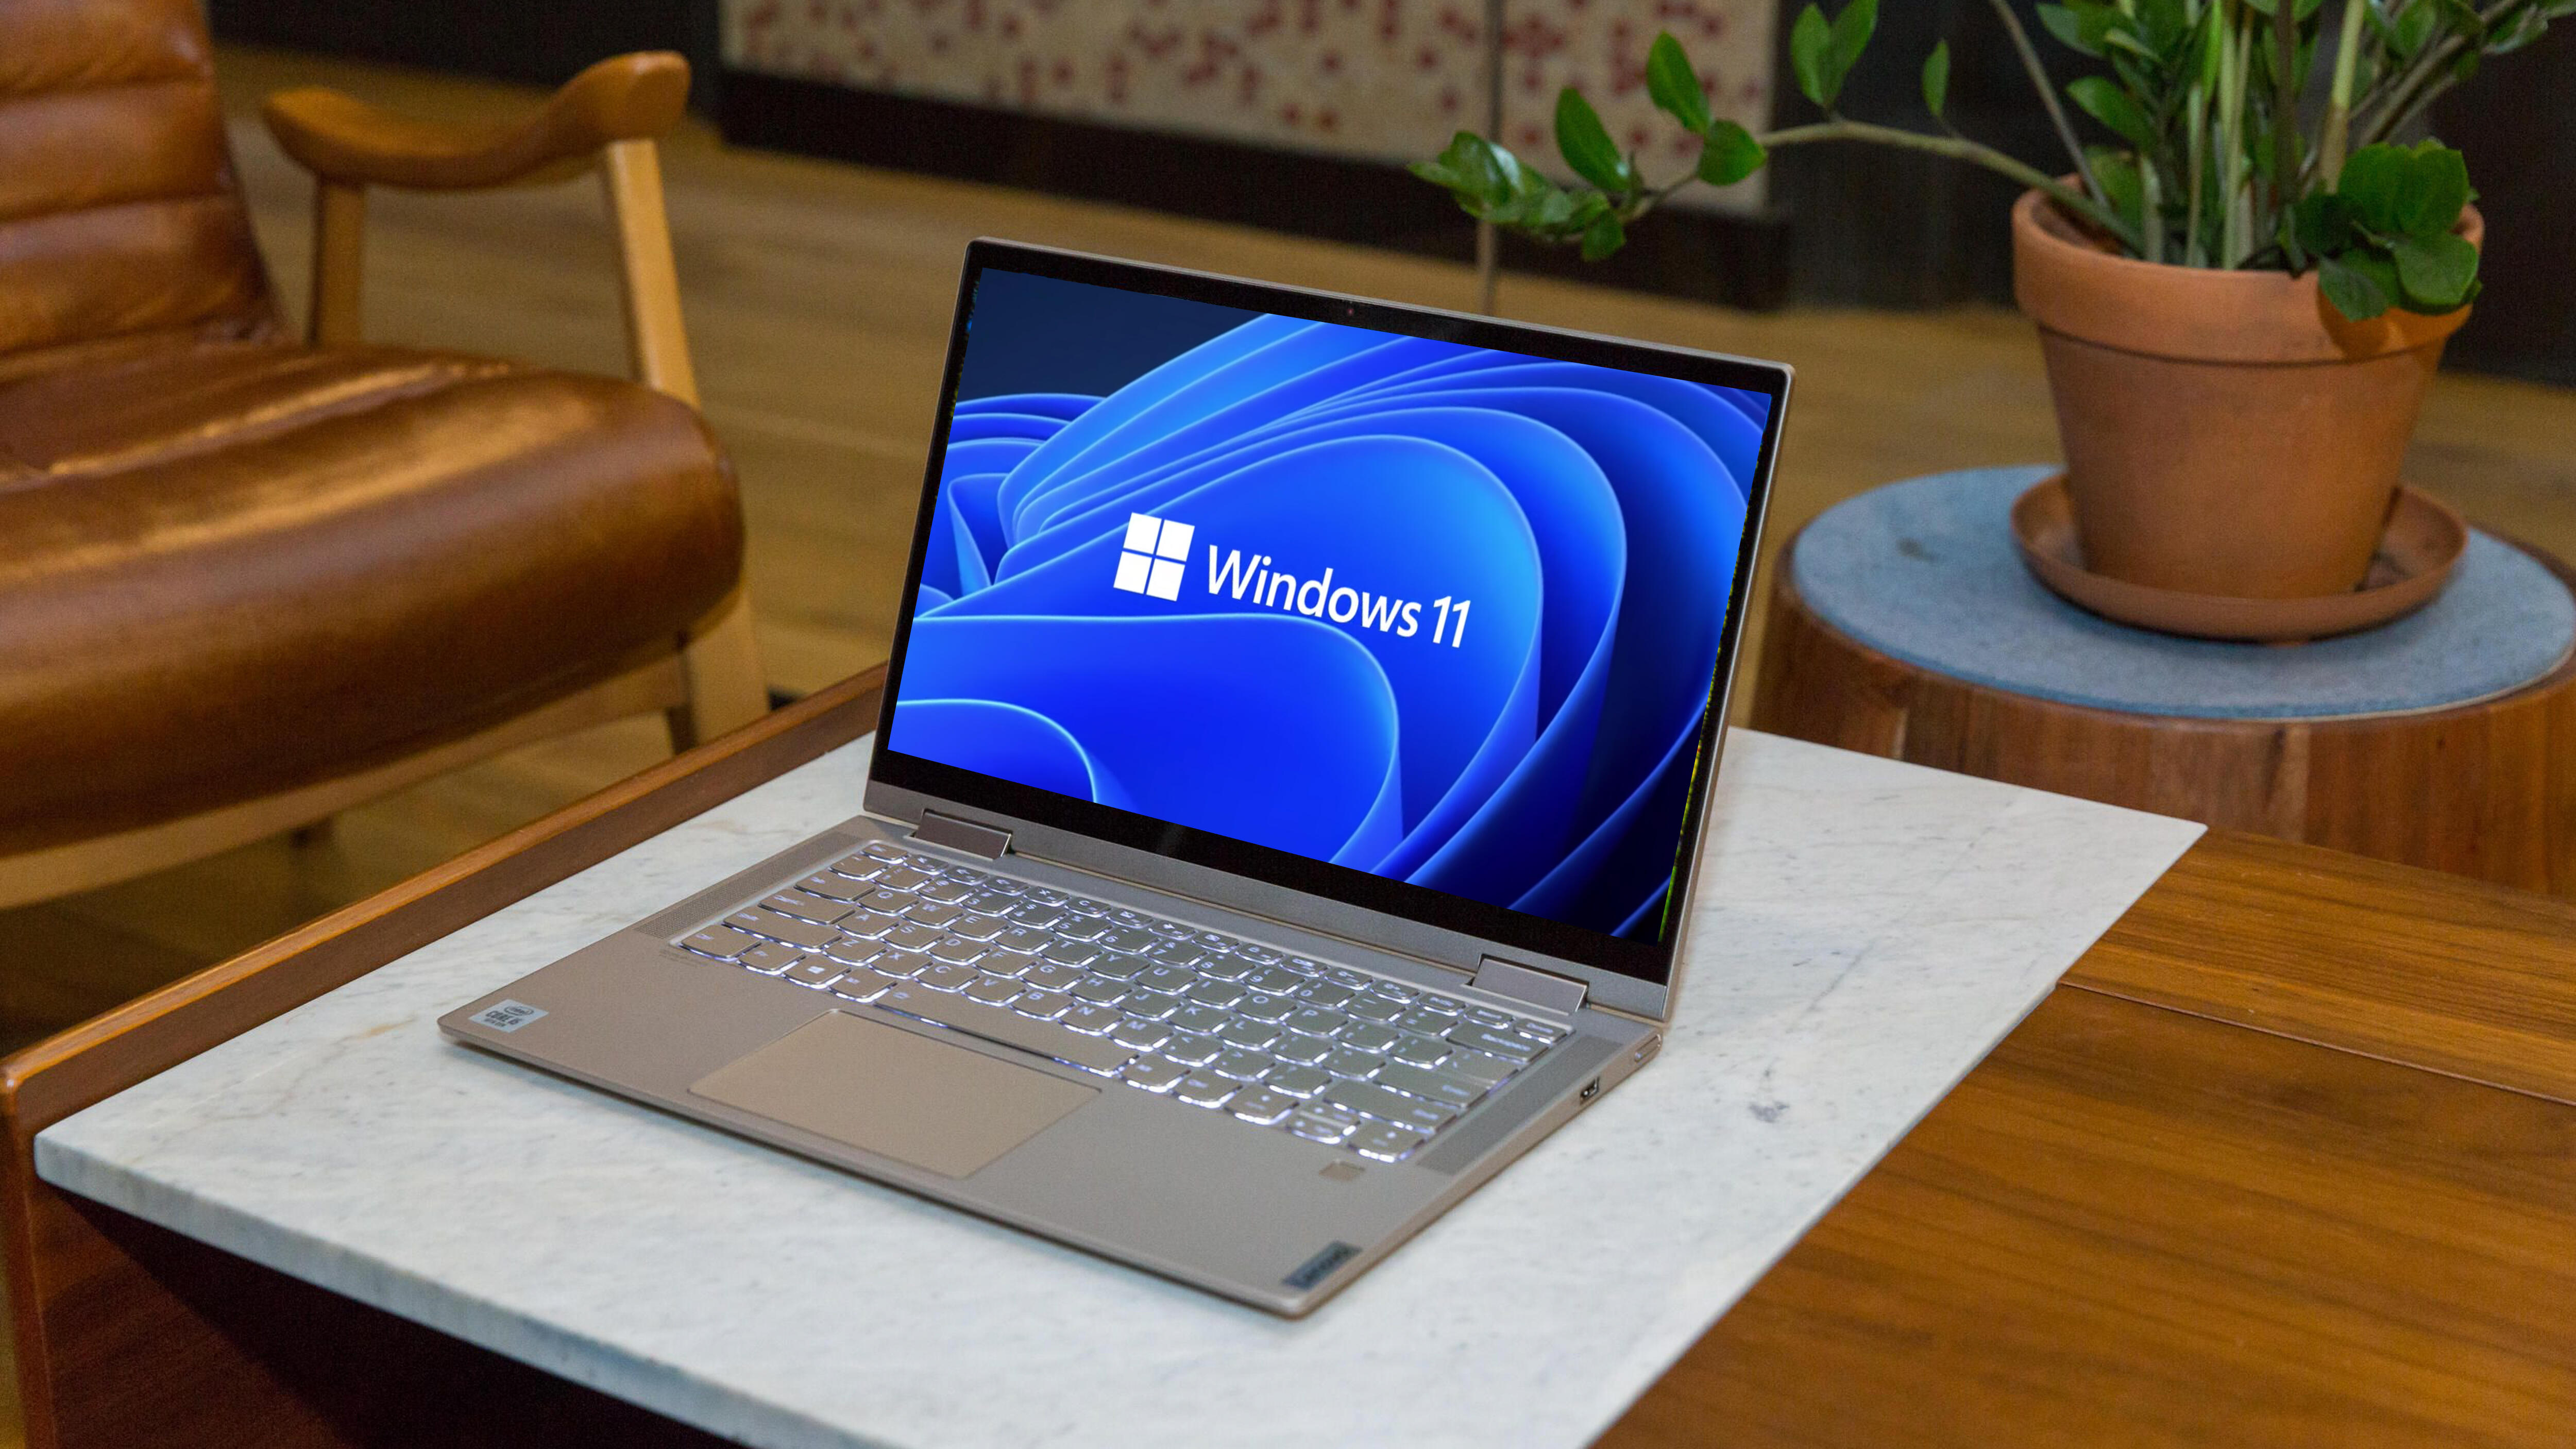 Windows 11 compatibility: Check if your PC meets Microsoft's requirements